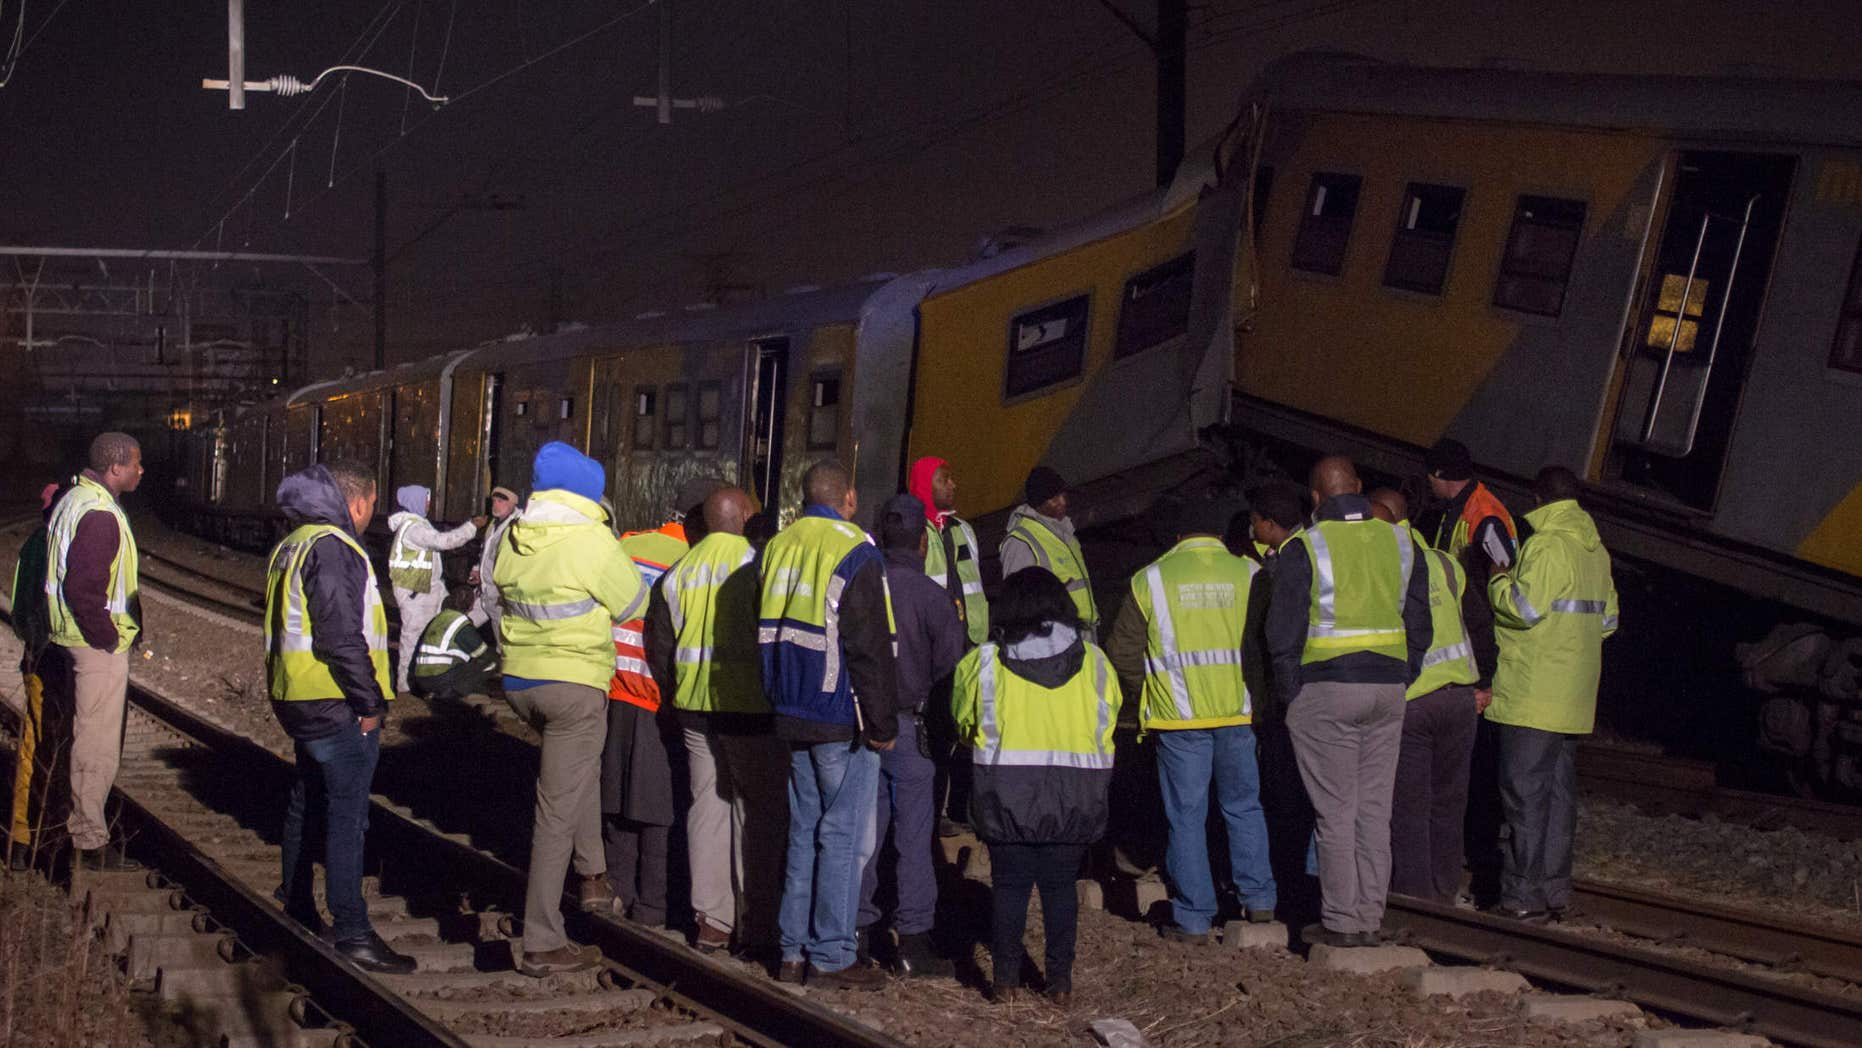 July 17, 2015: Emergency workers gather at the scene of a train collision at the Booysens train station near Johannesburg.